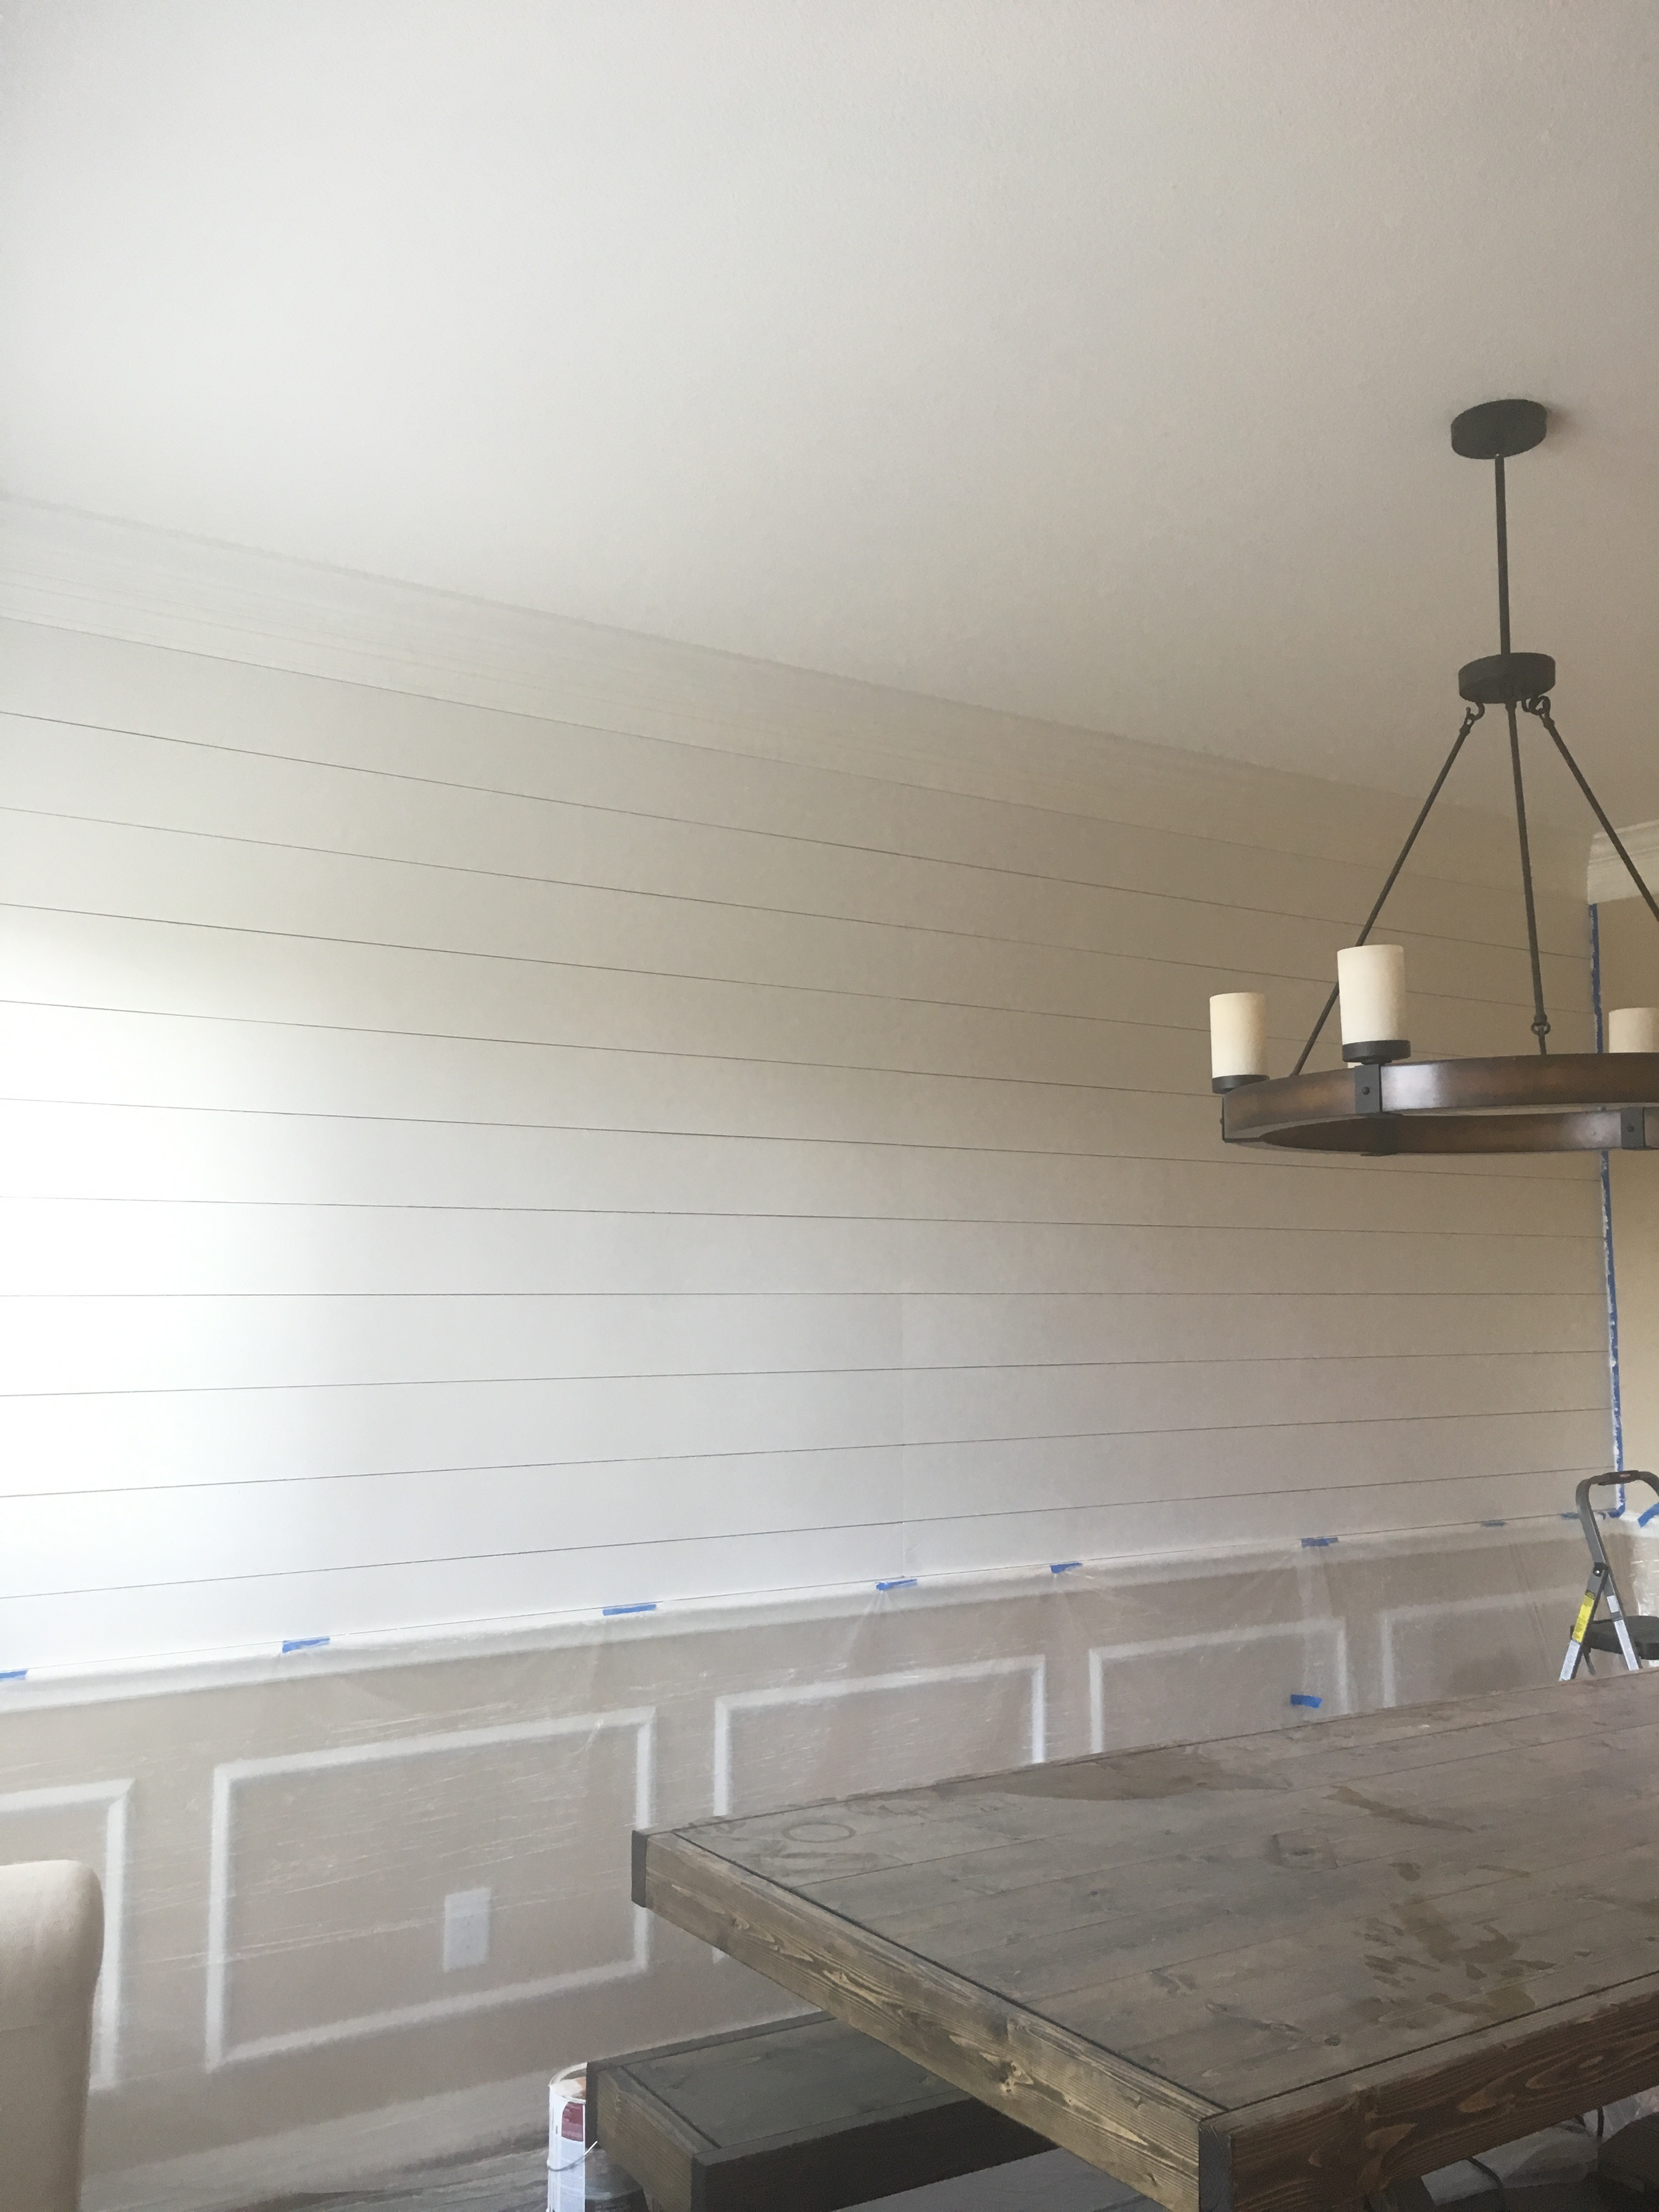 DIY Shiplap Wall - #Shiplap #DIY #Projects #HomeProjects